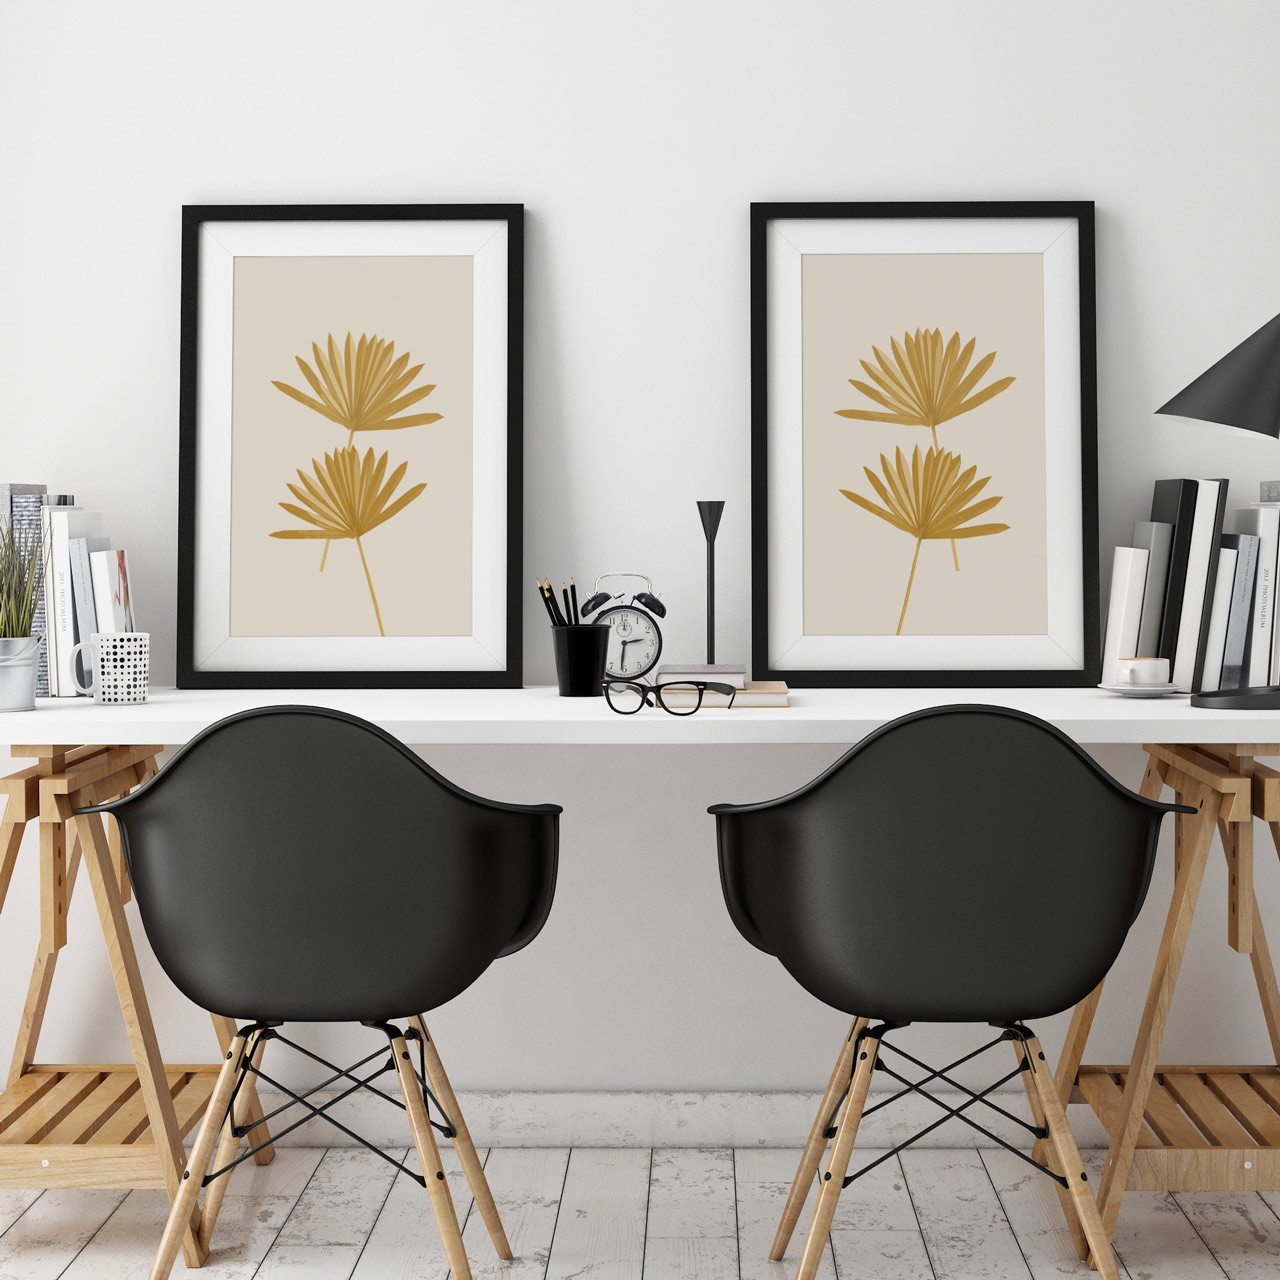 'Sun Palm II and III' Abstract Leaf Art Prints from The Printed Home (Printable)